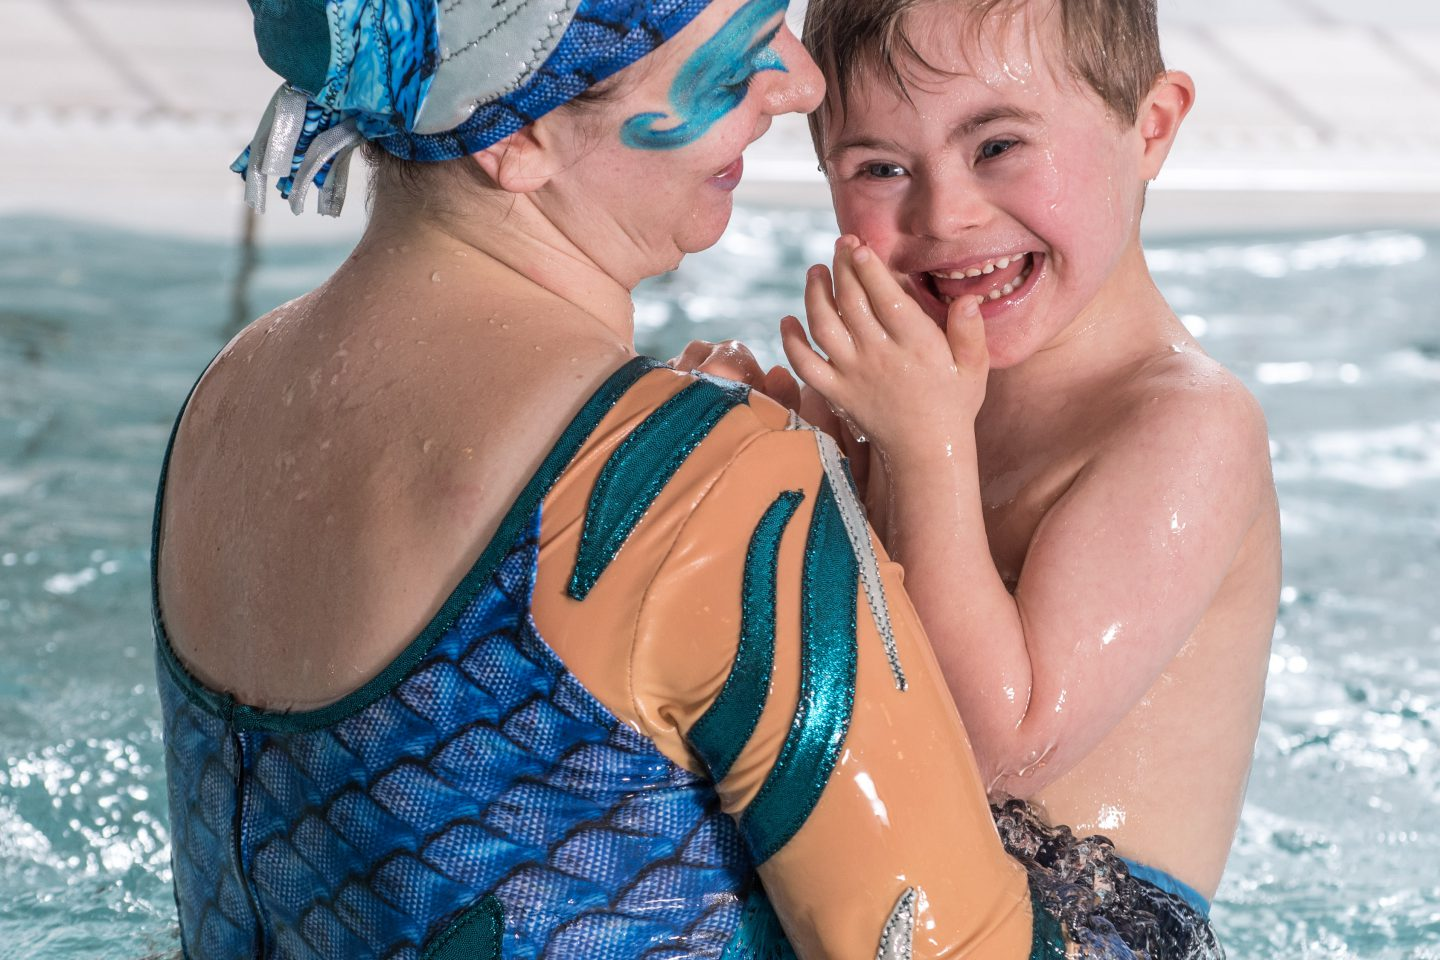 Into The Blue - a performer in blue holds a young male audience member in the water. they are both in a swimming pool and both are smiling widely